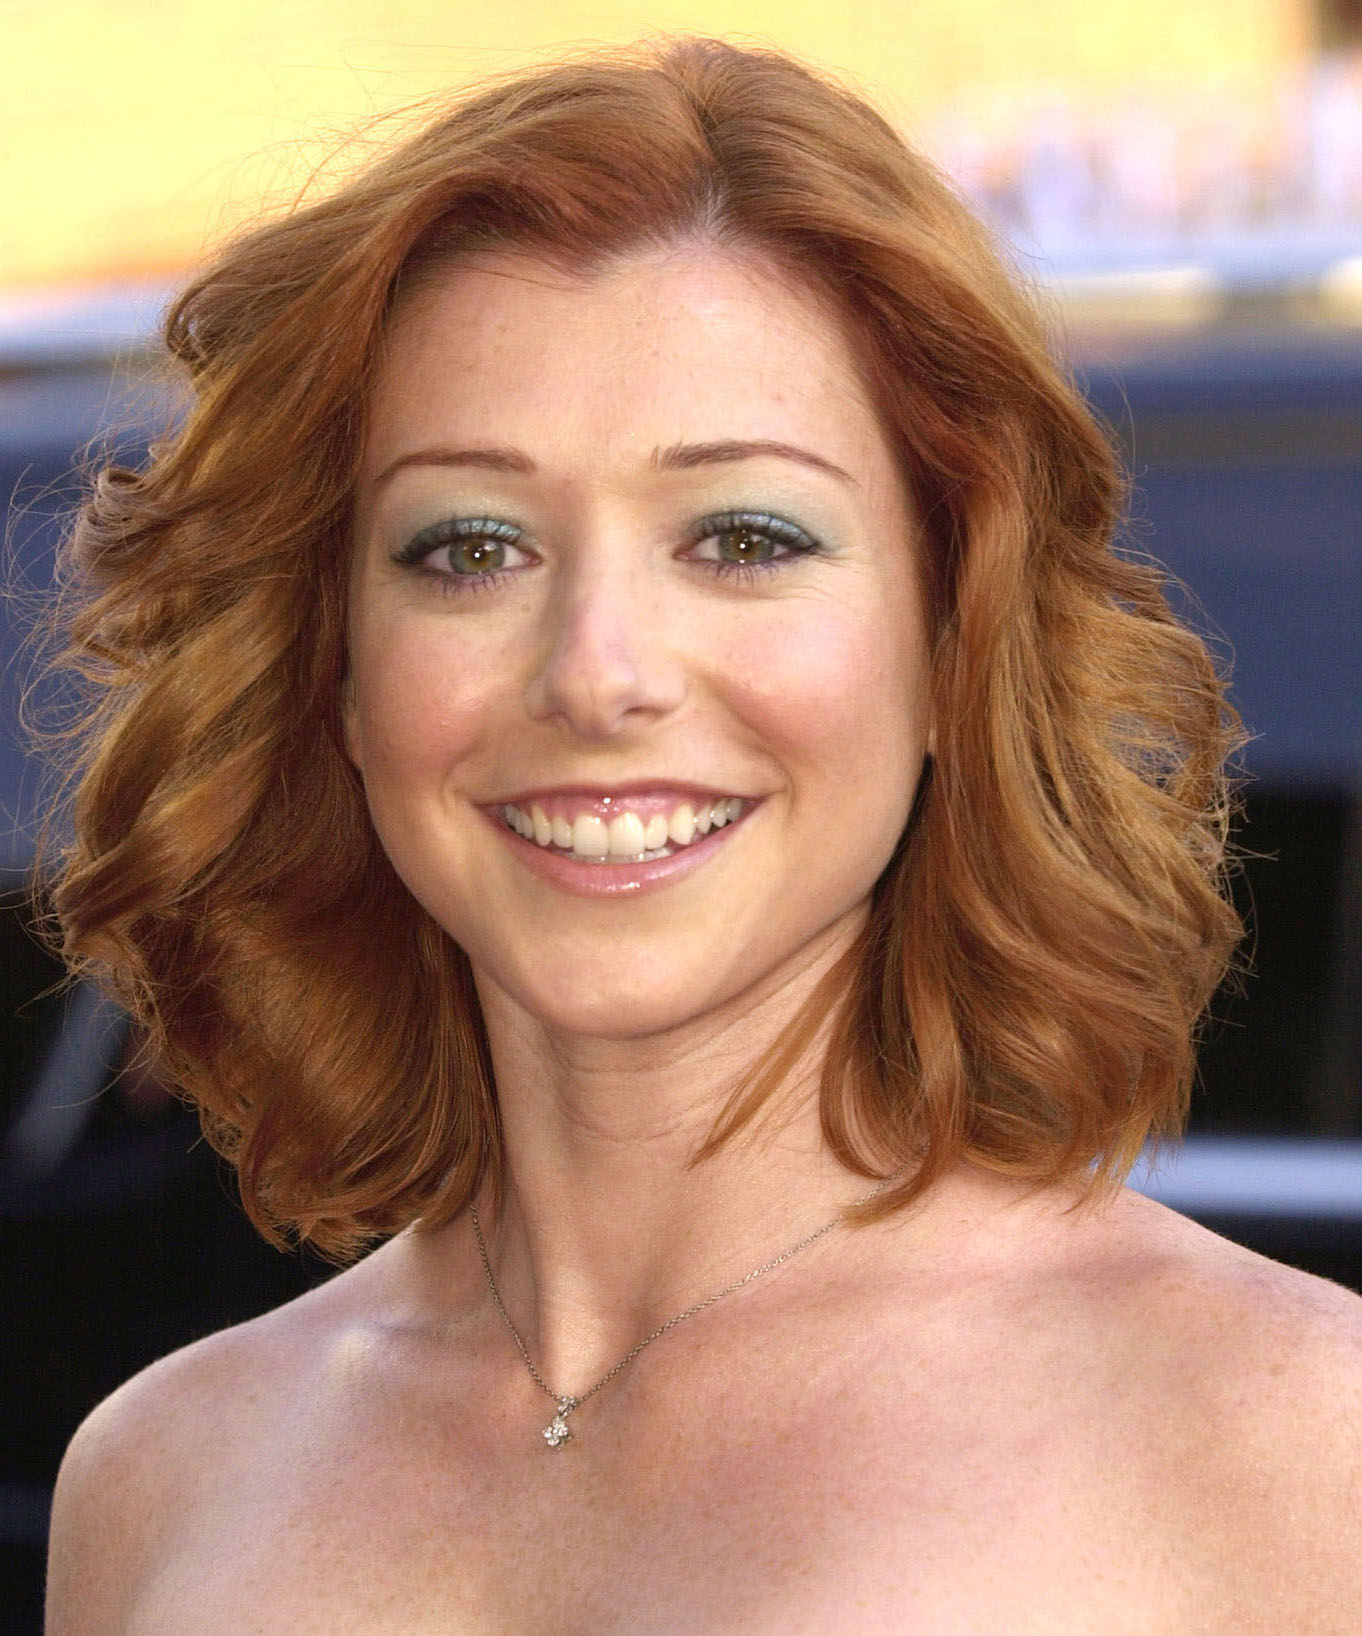 59 best images about ☆ Alyson Hannigan ☆ on Pinterest | Alyson hannigan, Beautiful women and Beautiful people